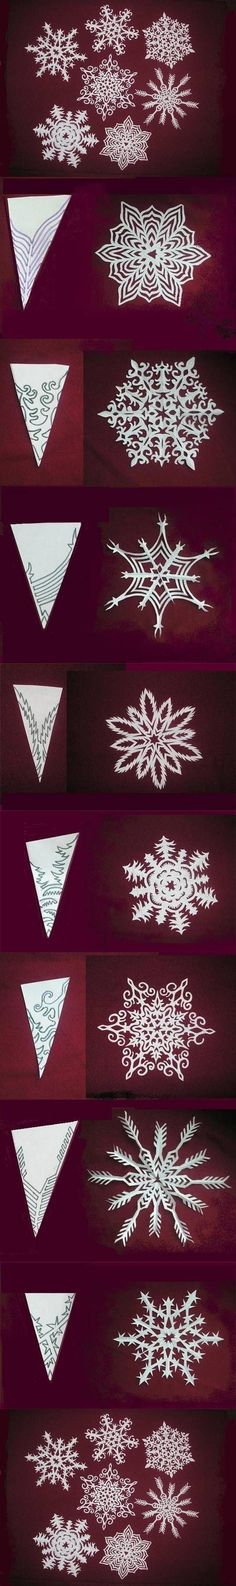 Make paper snowflakes .- Papier Schneeflocken basteln … Make Paper Snowflakes More - Noel Christmas, Winter Christmas, Christmas Ornaments, Christmas Ideas, Christmas Paper, Christmas Snowflakes, Office Christmas, Winter Snow, Origami Christmas